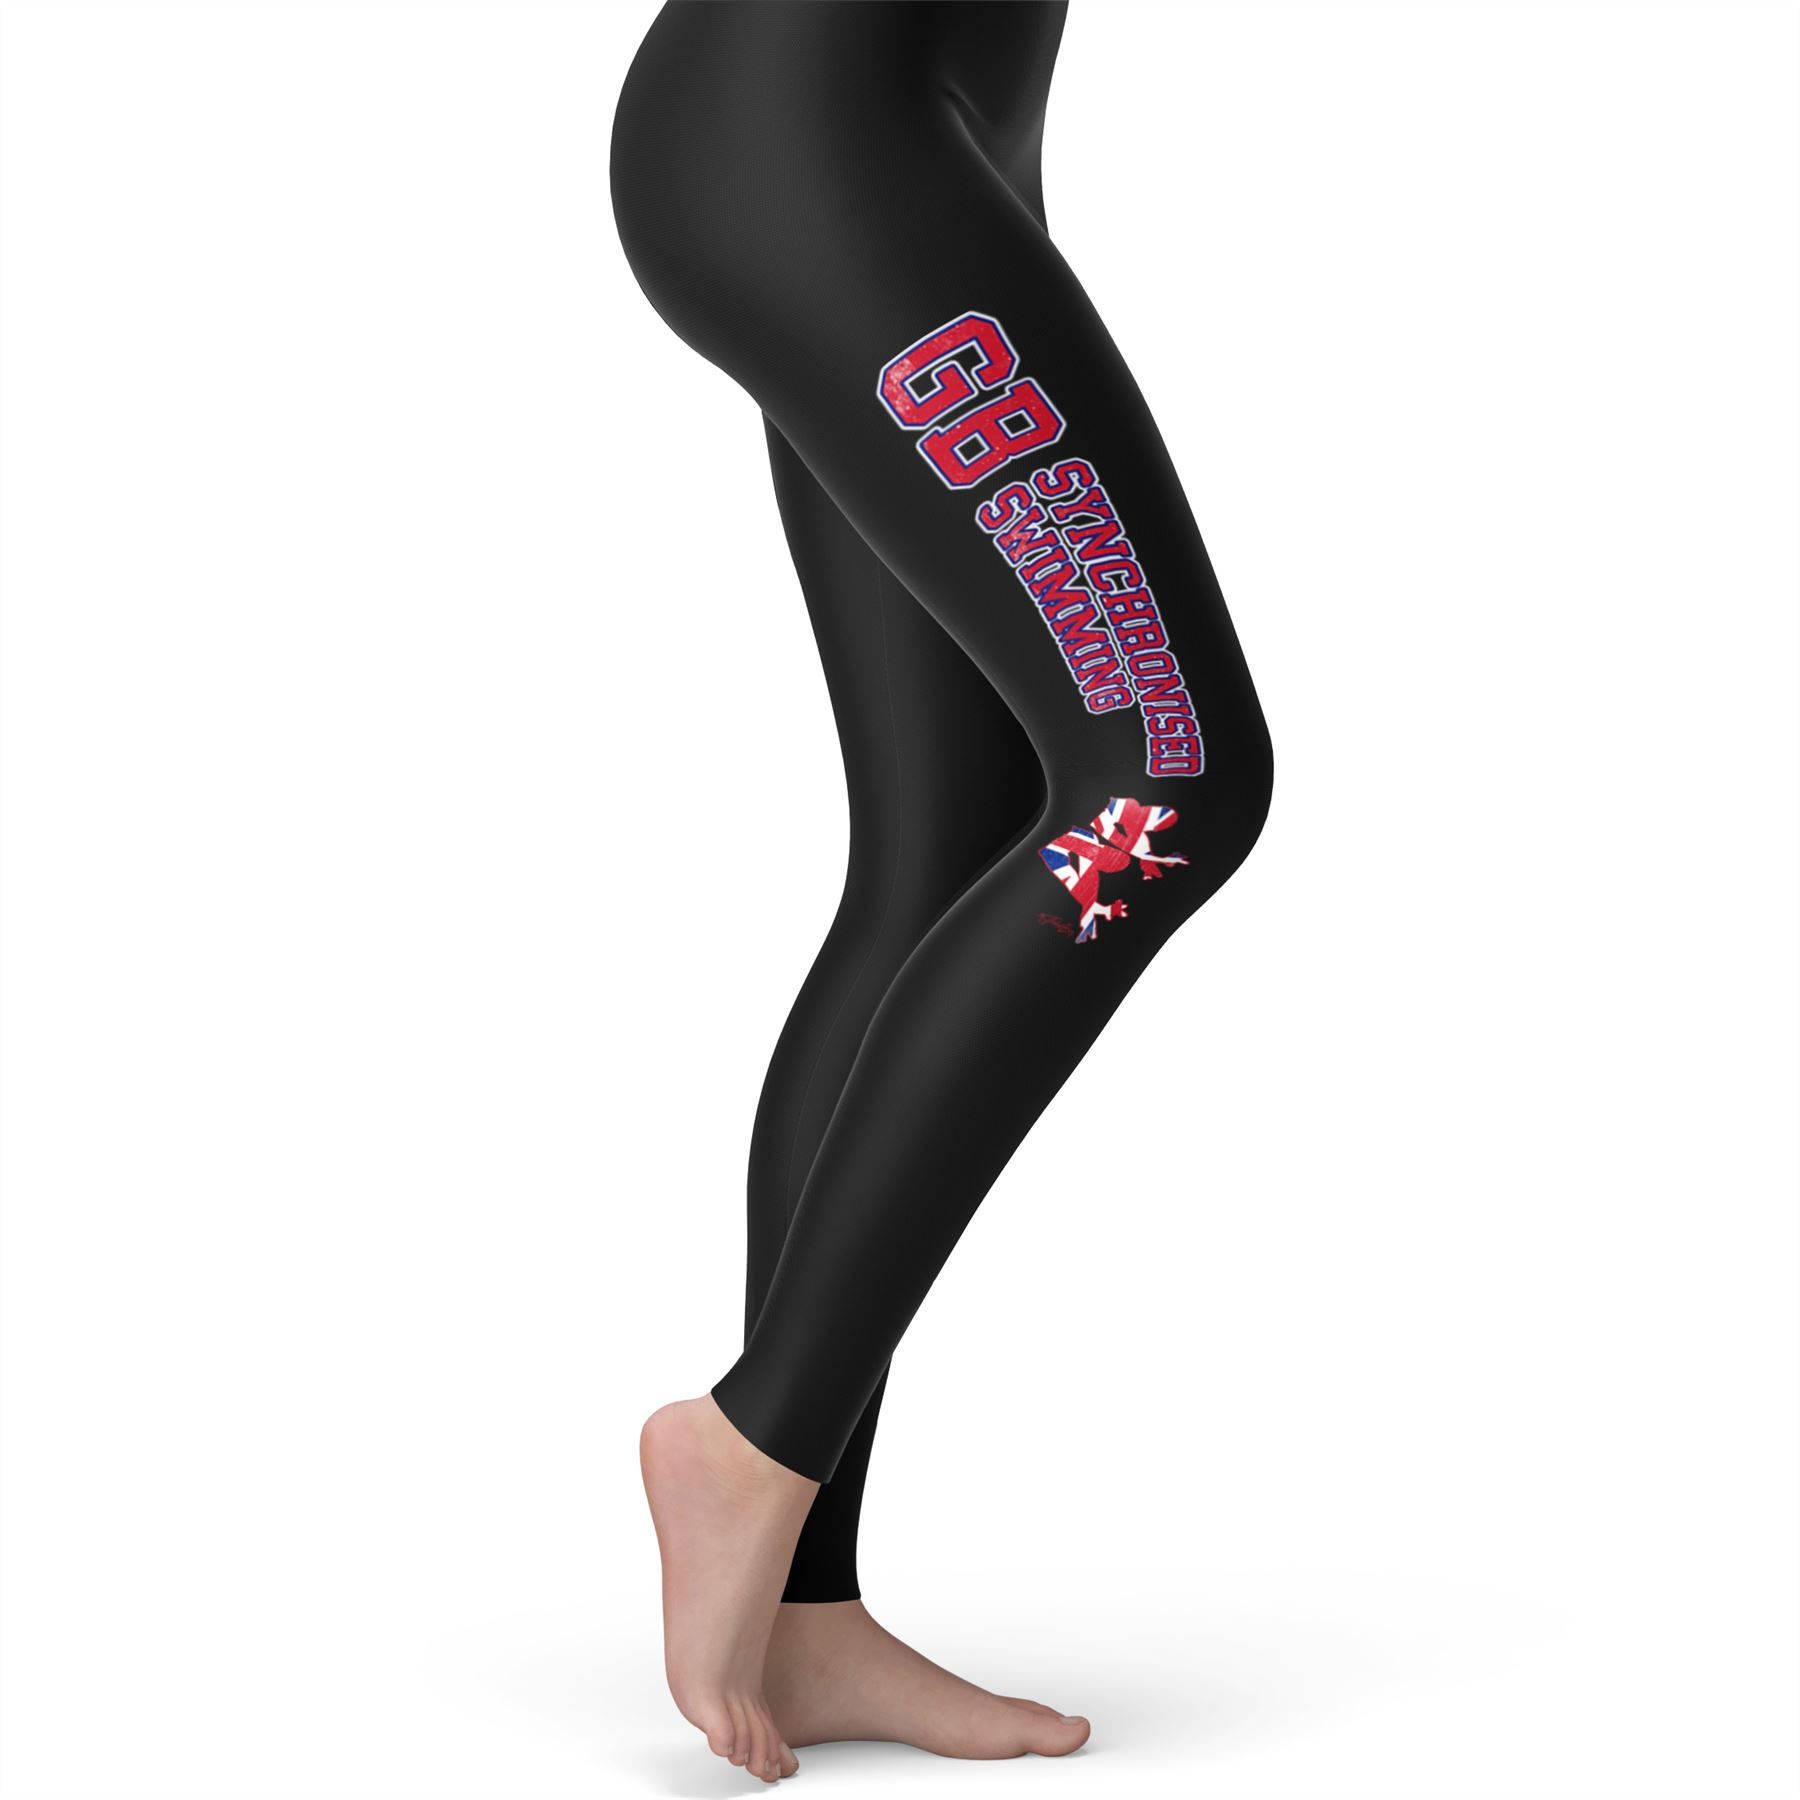 Twisted-Envy-GB-Synchronised-Swimming-Women-039-s-Funny-Leggings